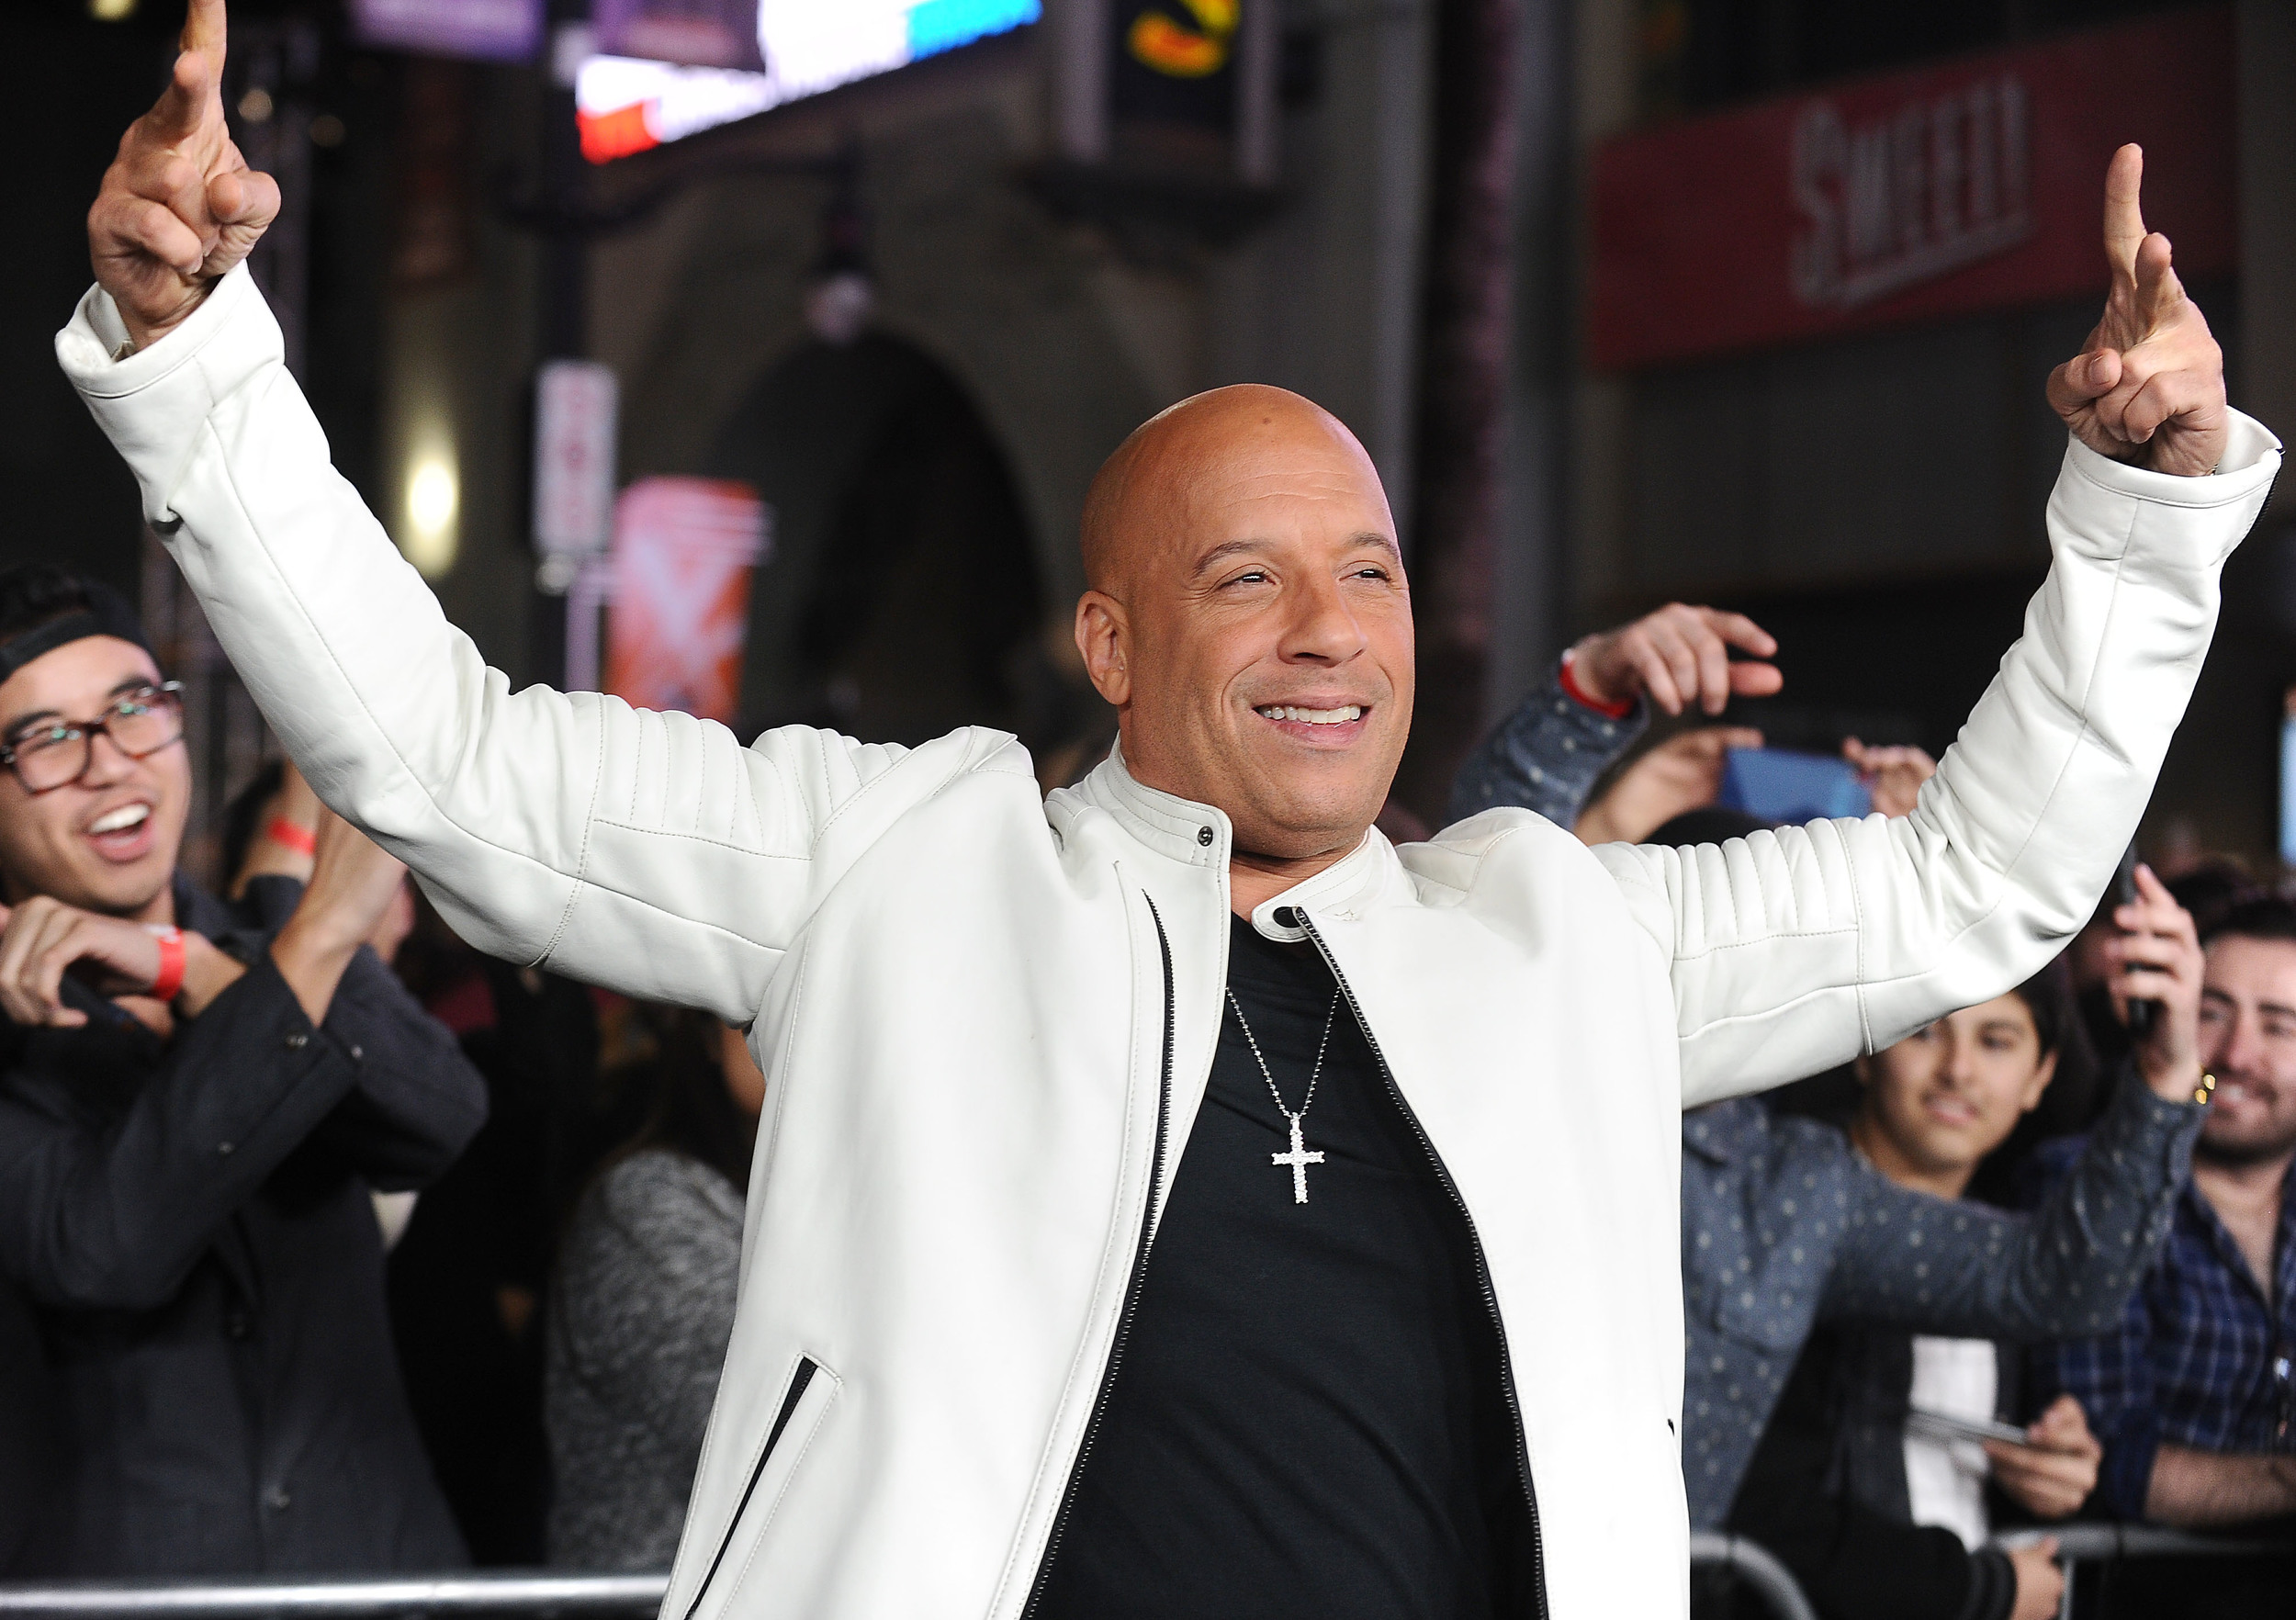 Study: Bald men are seen as more successful and powerful